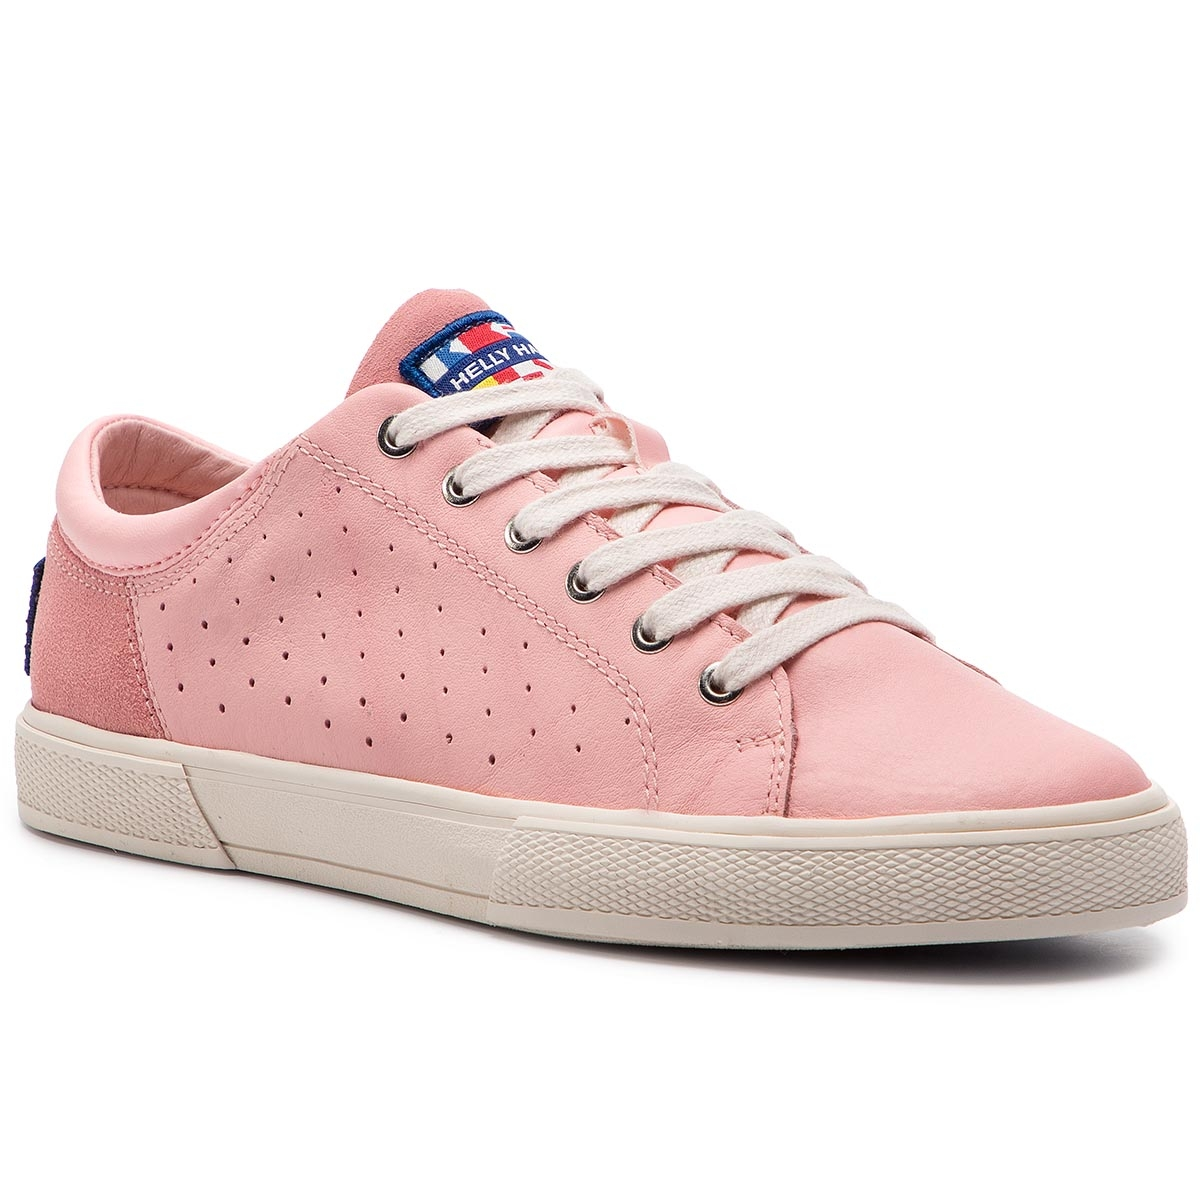 Tenisky HELLY HANSEN - Copenhagen Leather Shoe 115-03.181 Powder Pink/Azalea Pink/Bridal Blush